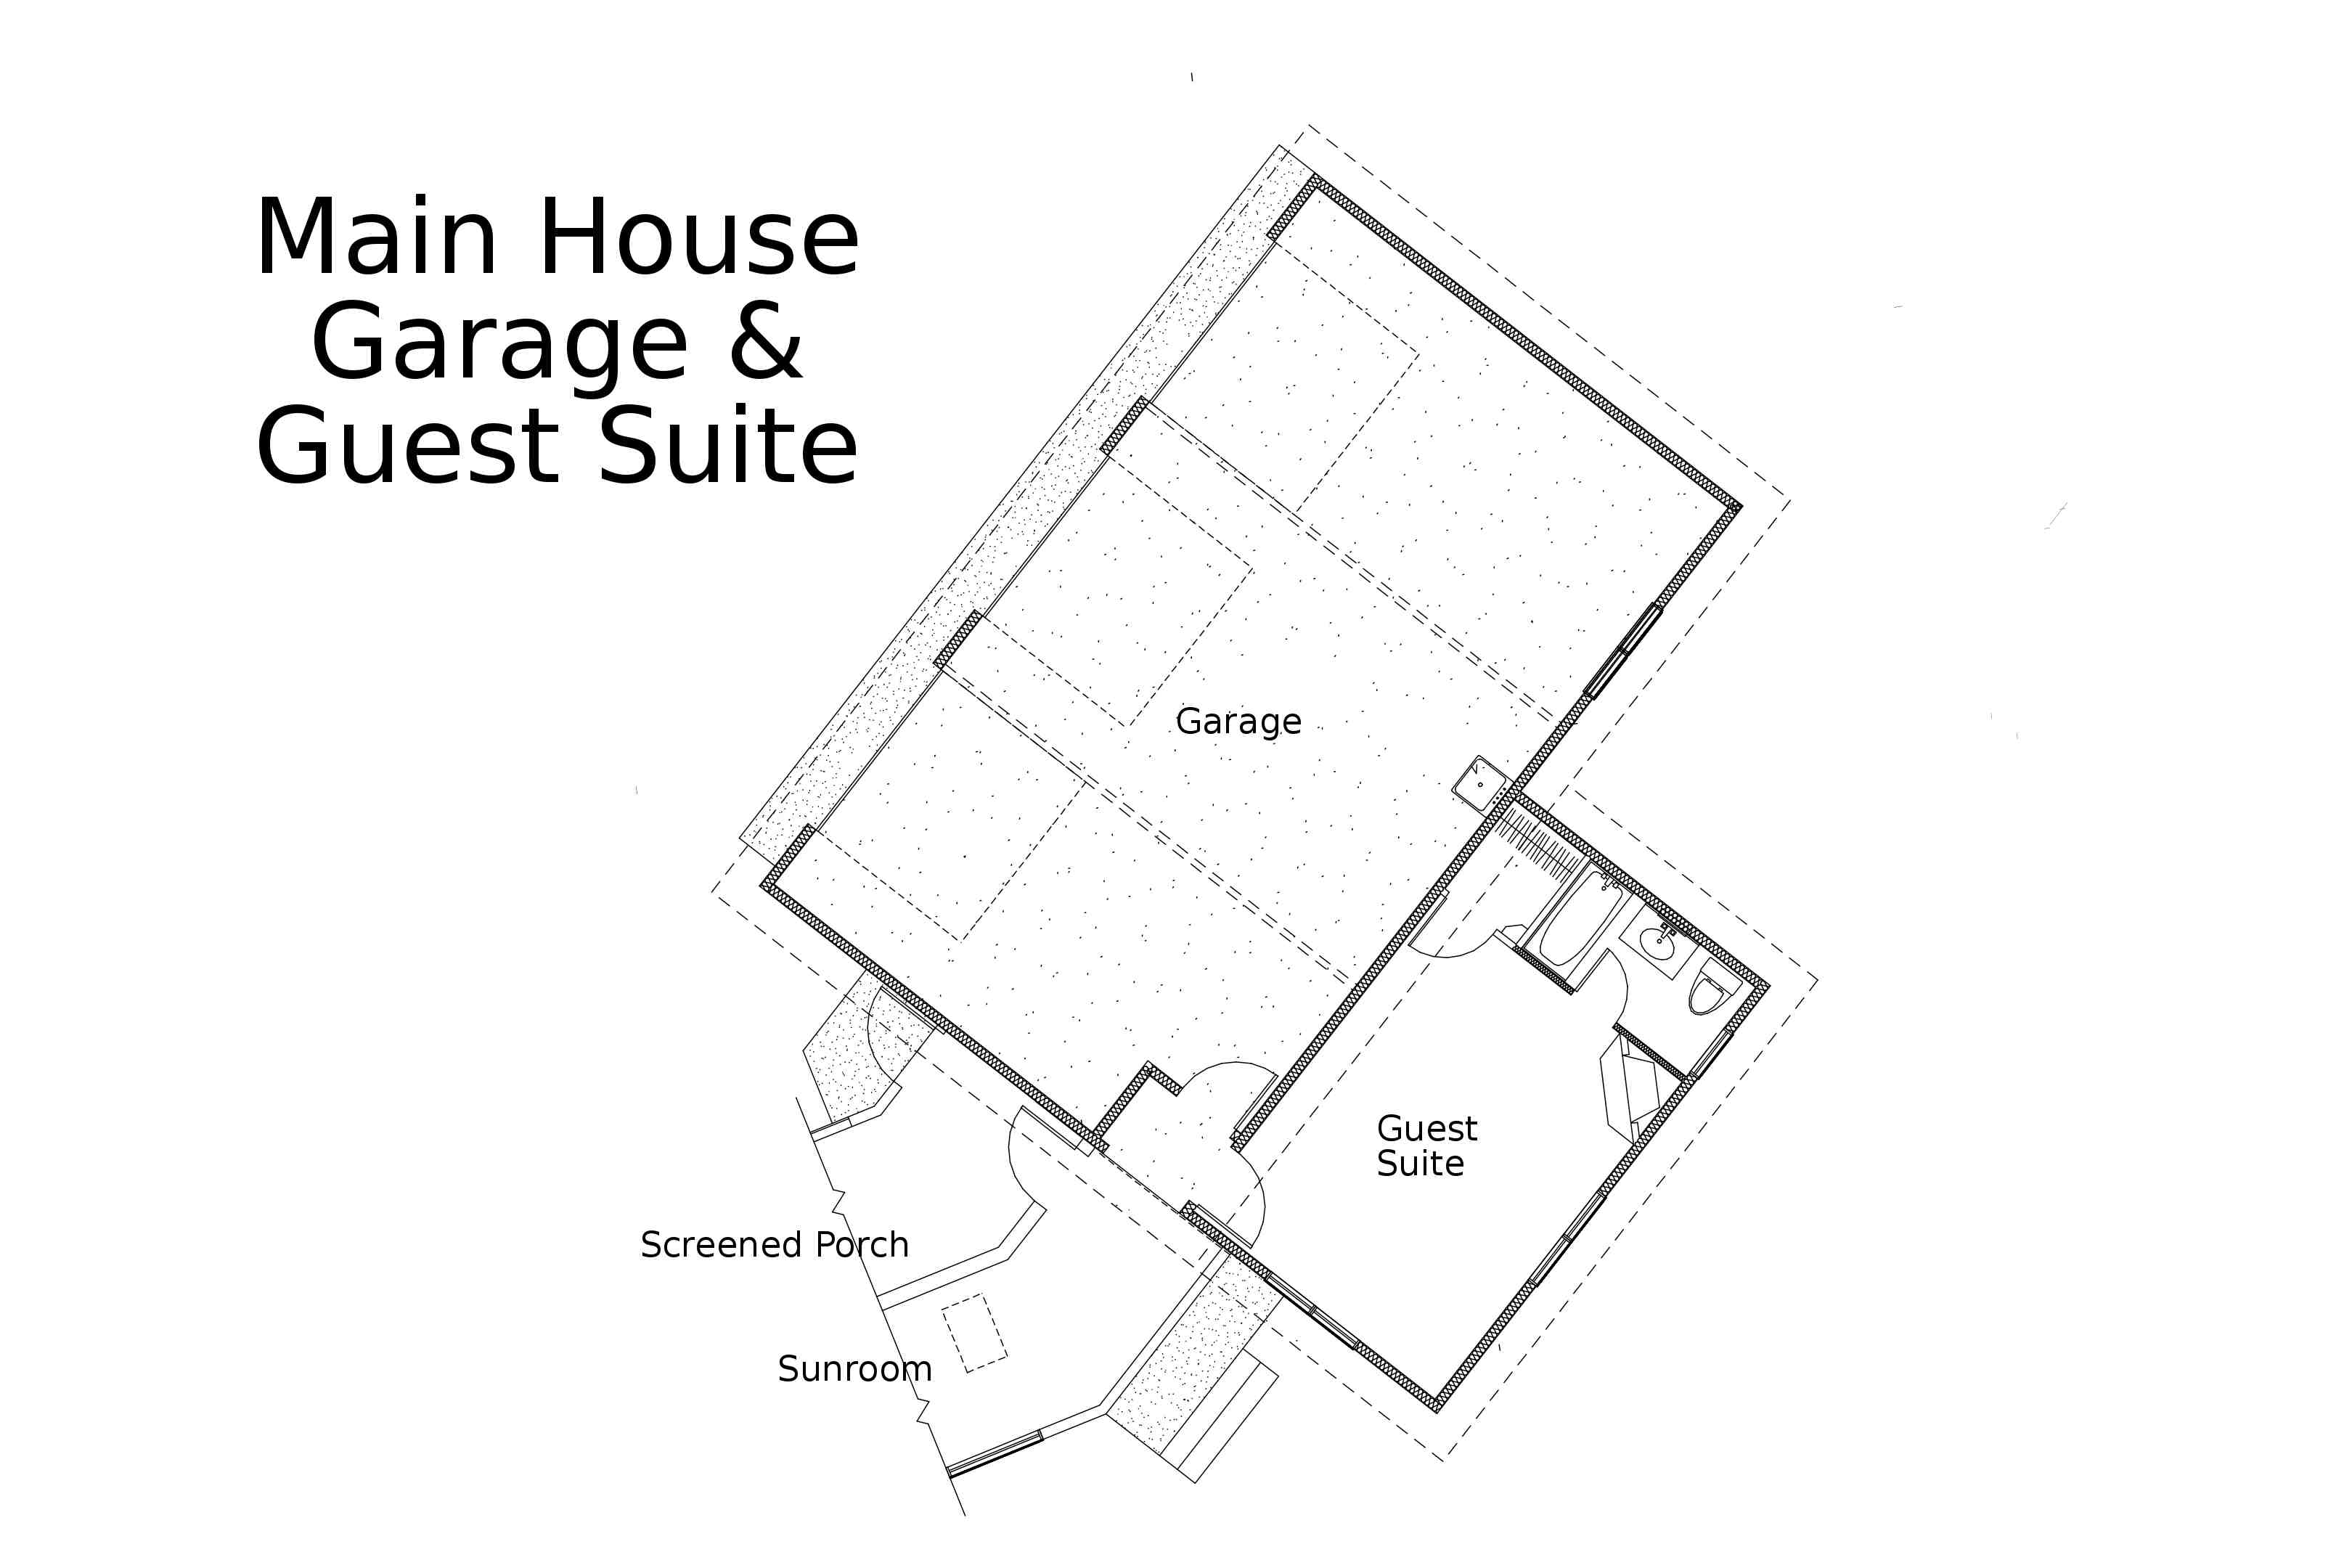 21 harmonious garage guest house floor plans home for Garage guest house floor plans